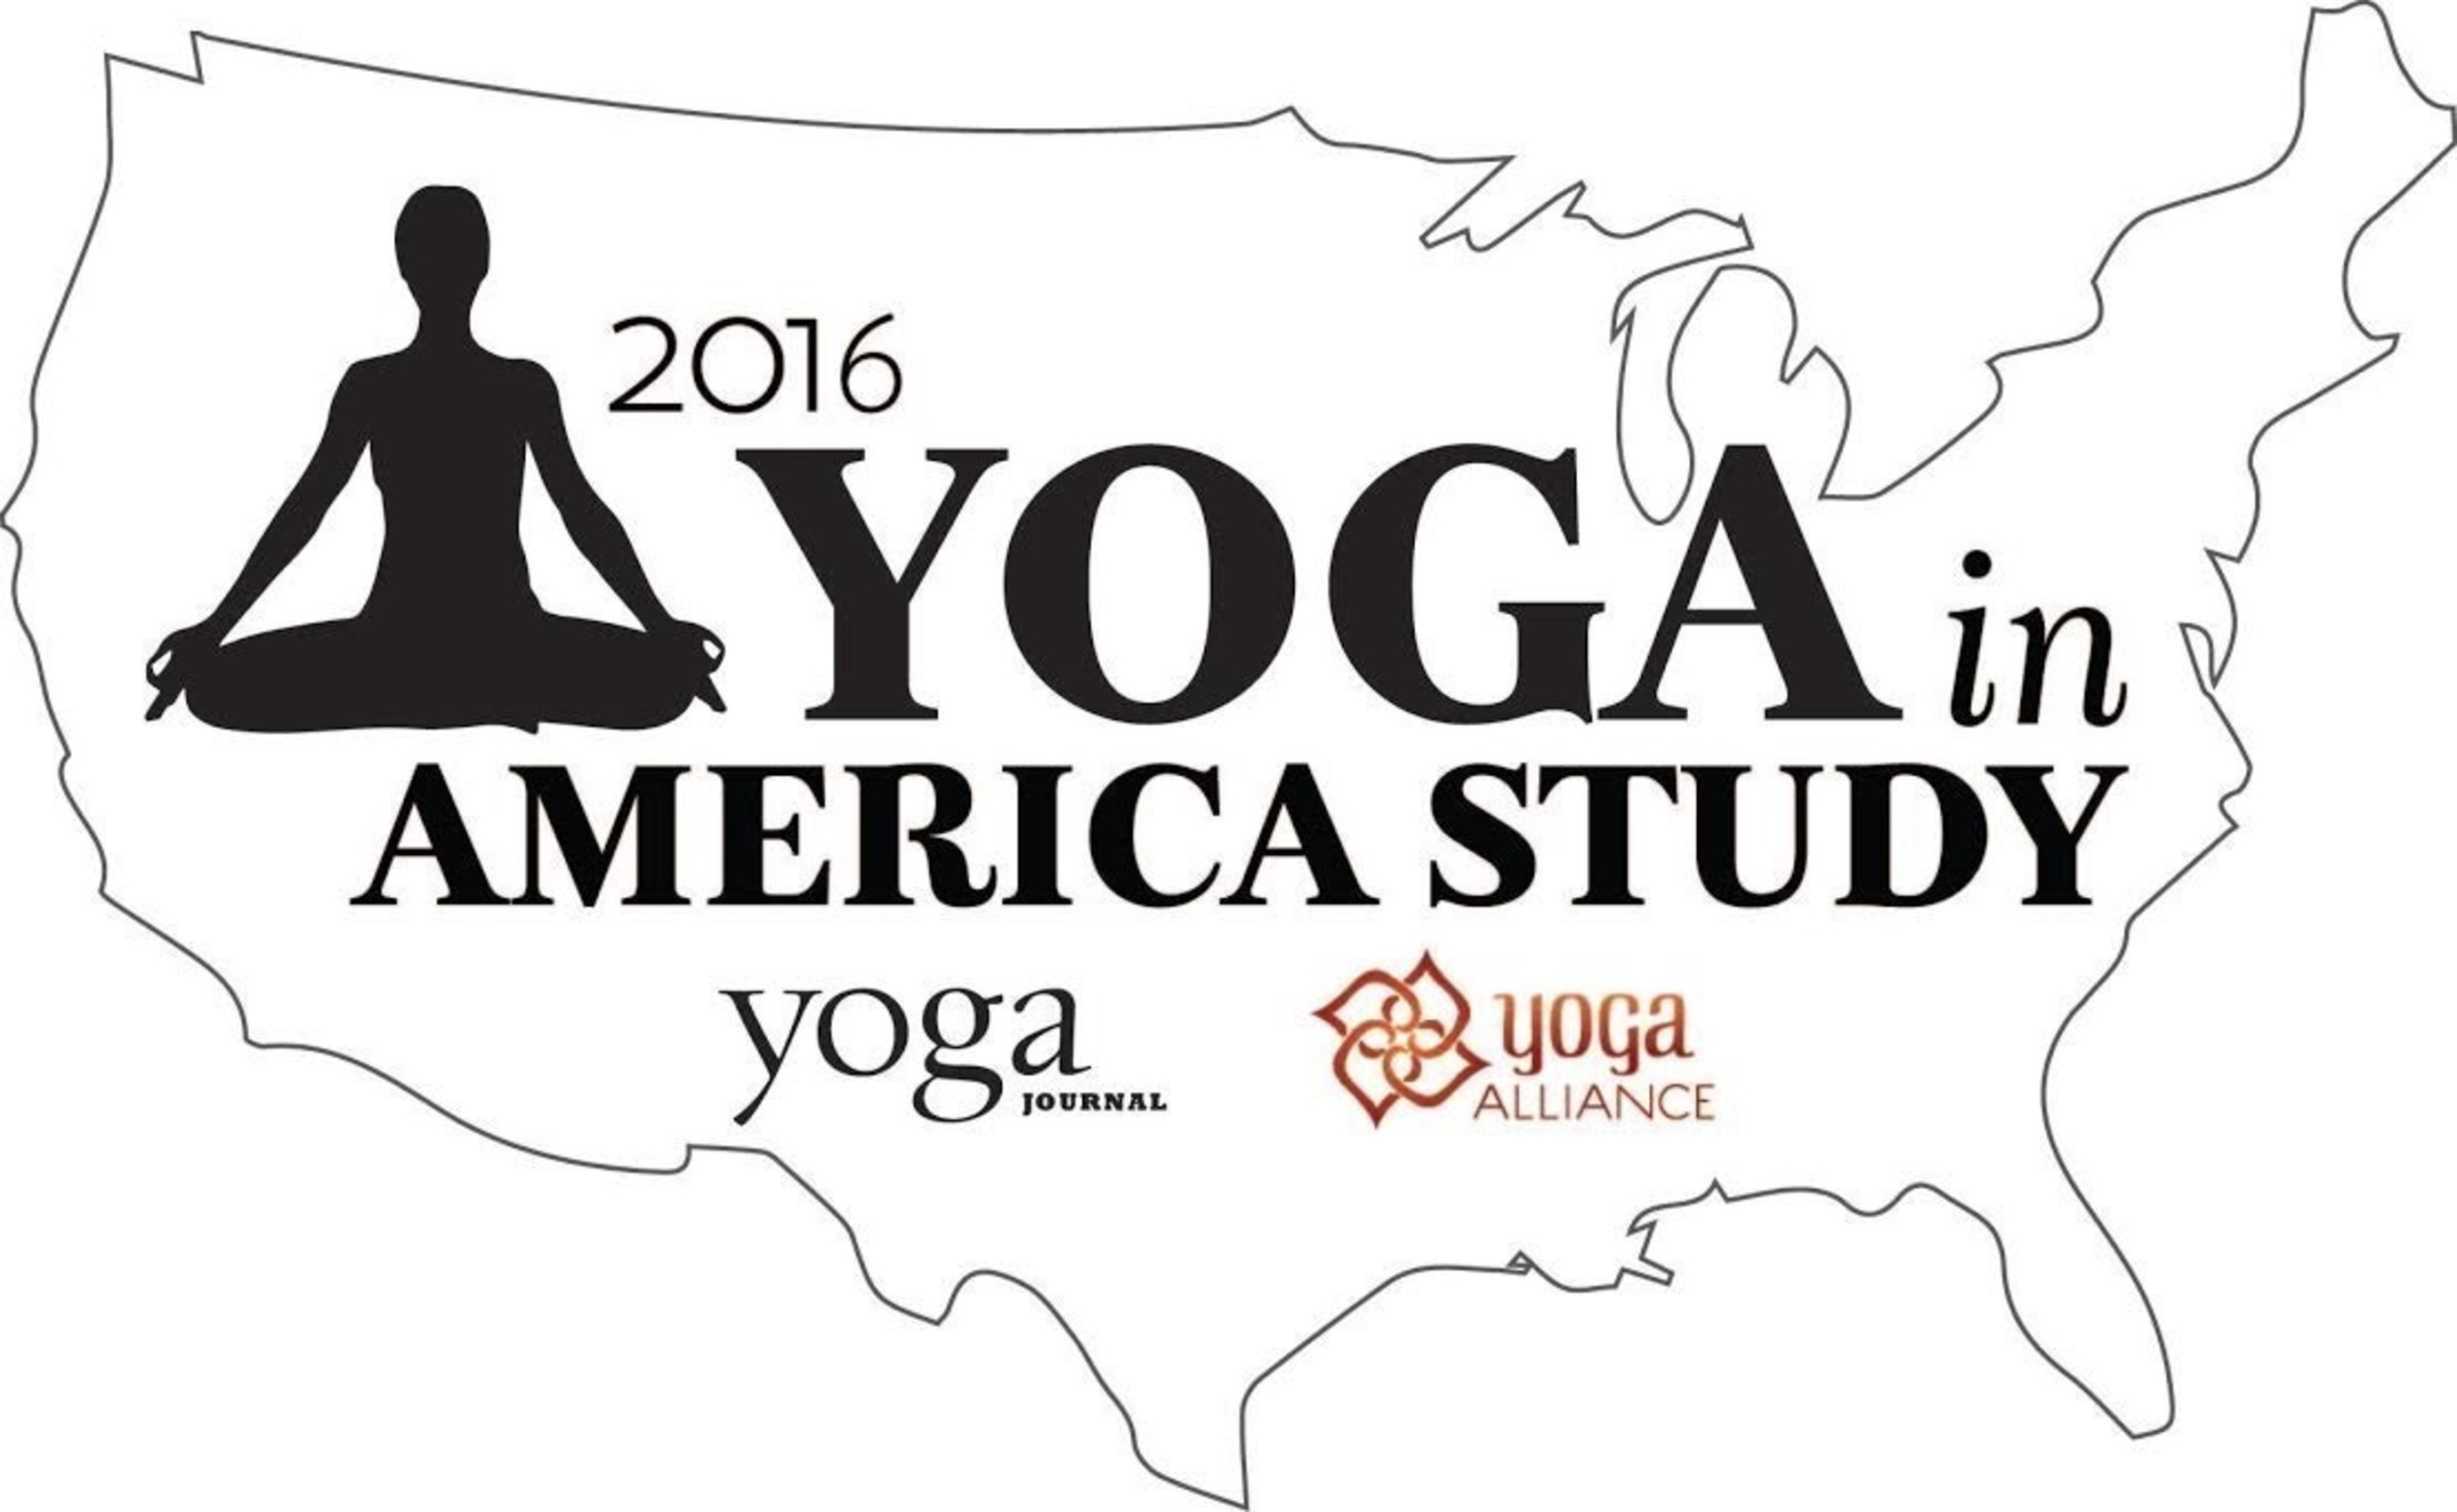 2016 Yoga In America Study Conducted By Yoga Journal And Yoga Alliance Reveals Growth And Benefits Of The Practice